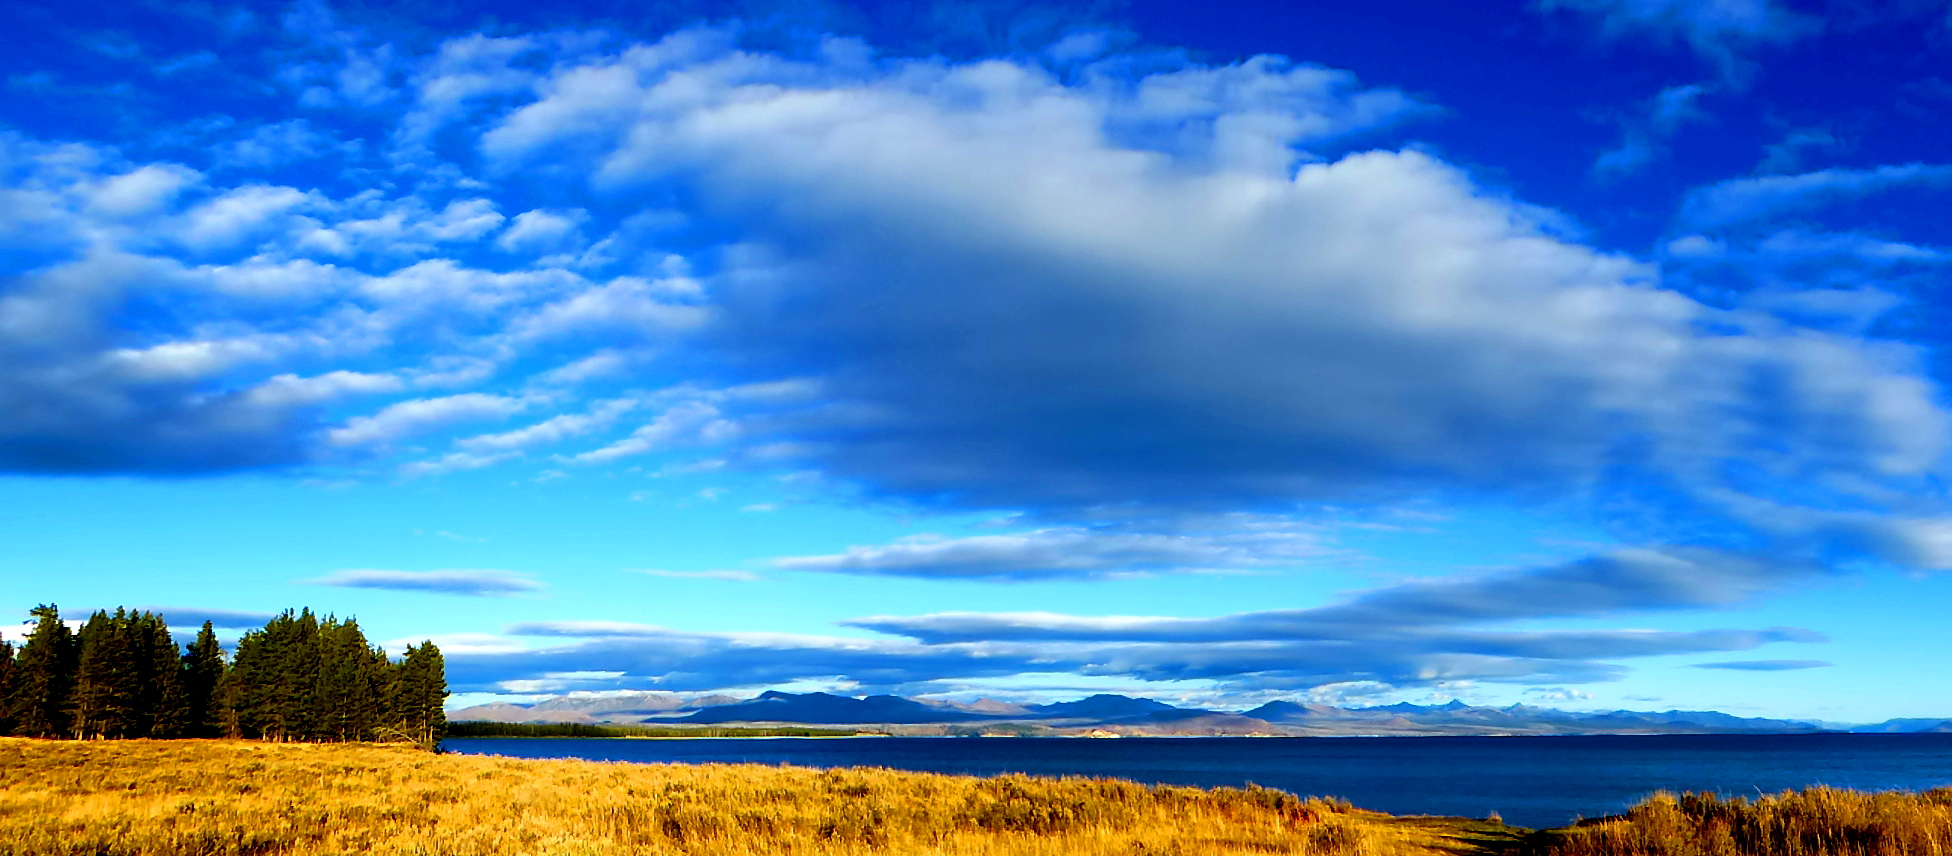 Yellowstone Lake under Big Sky Country